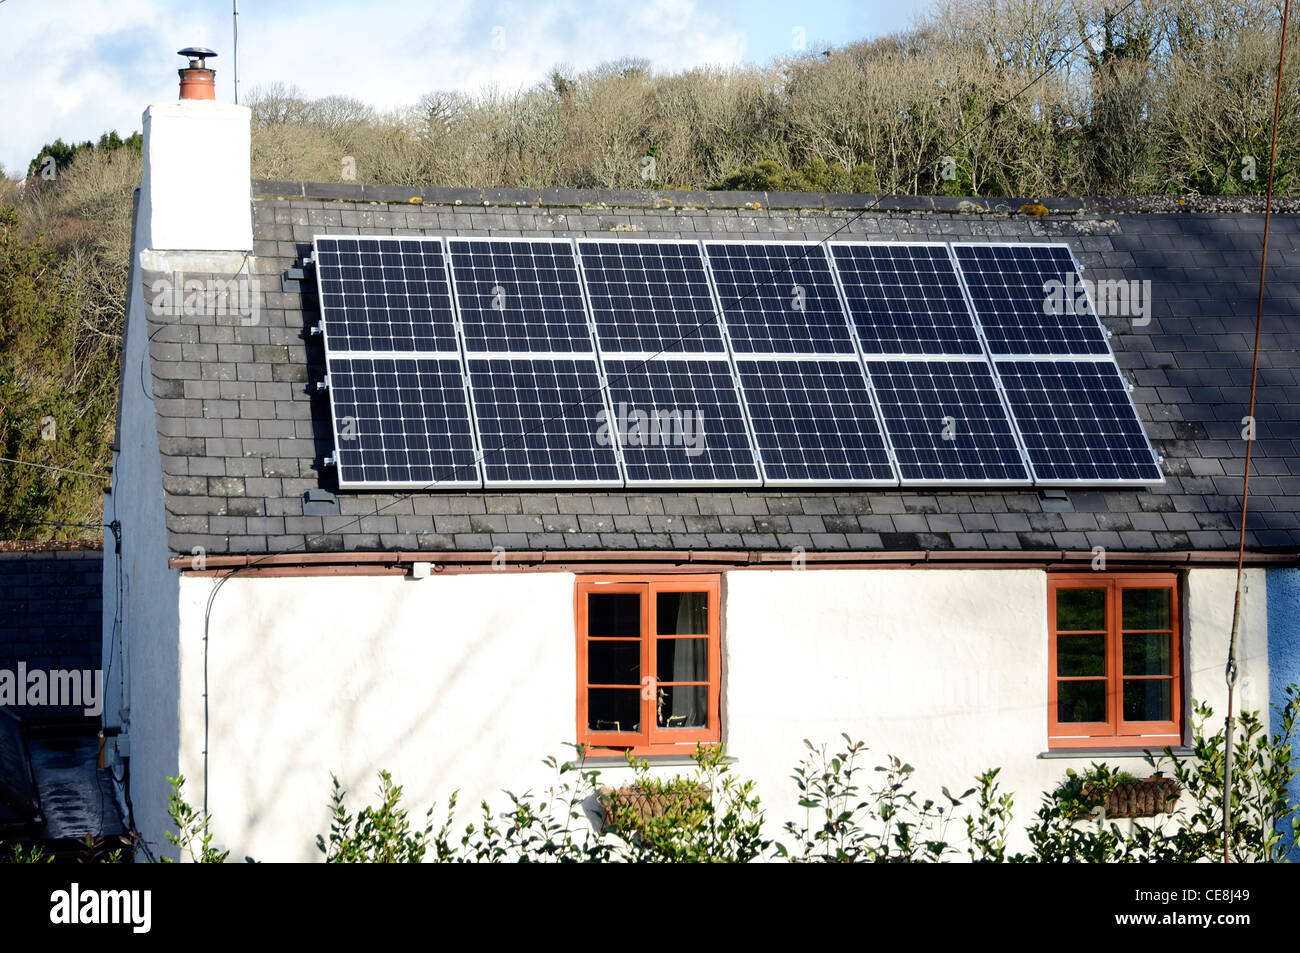 Solar panels fitted to the roof of an old cottage - Stock Image